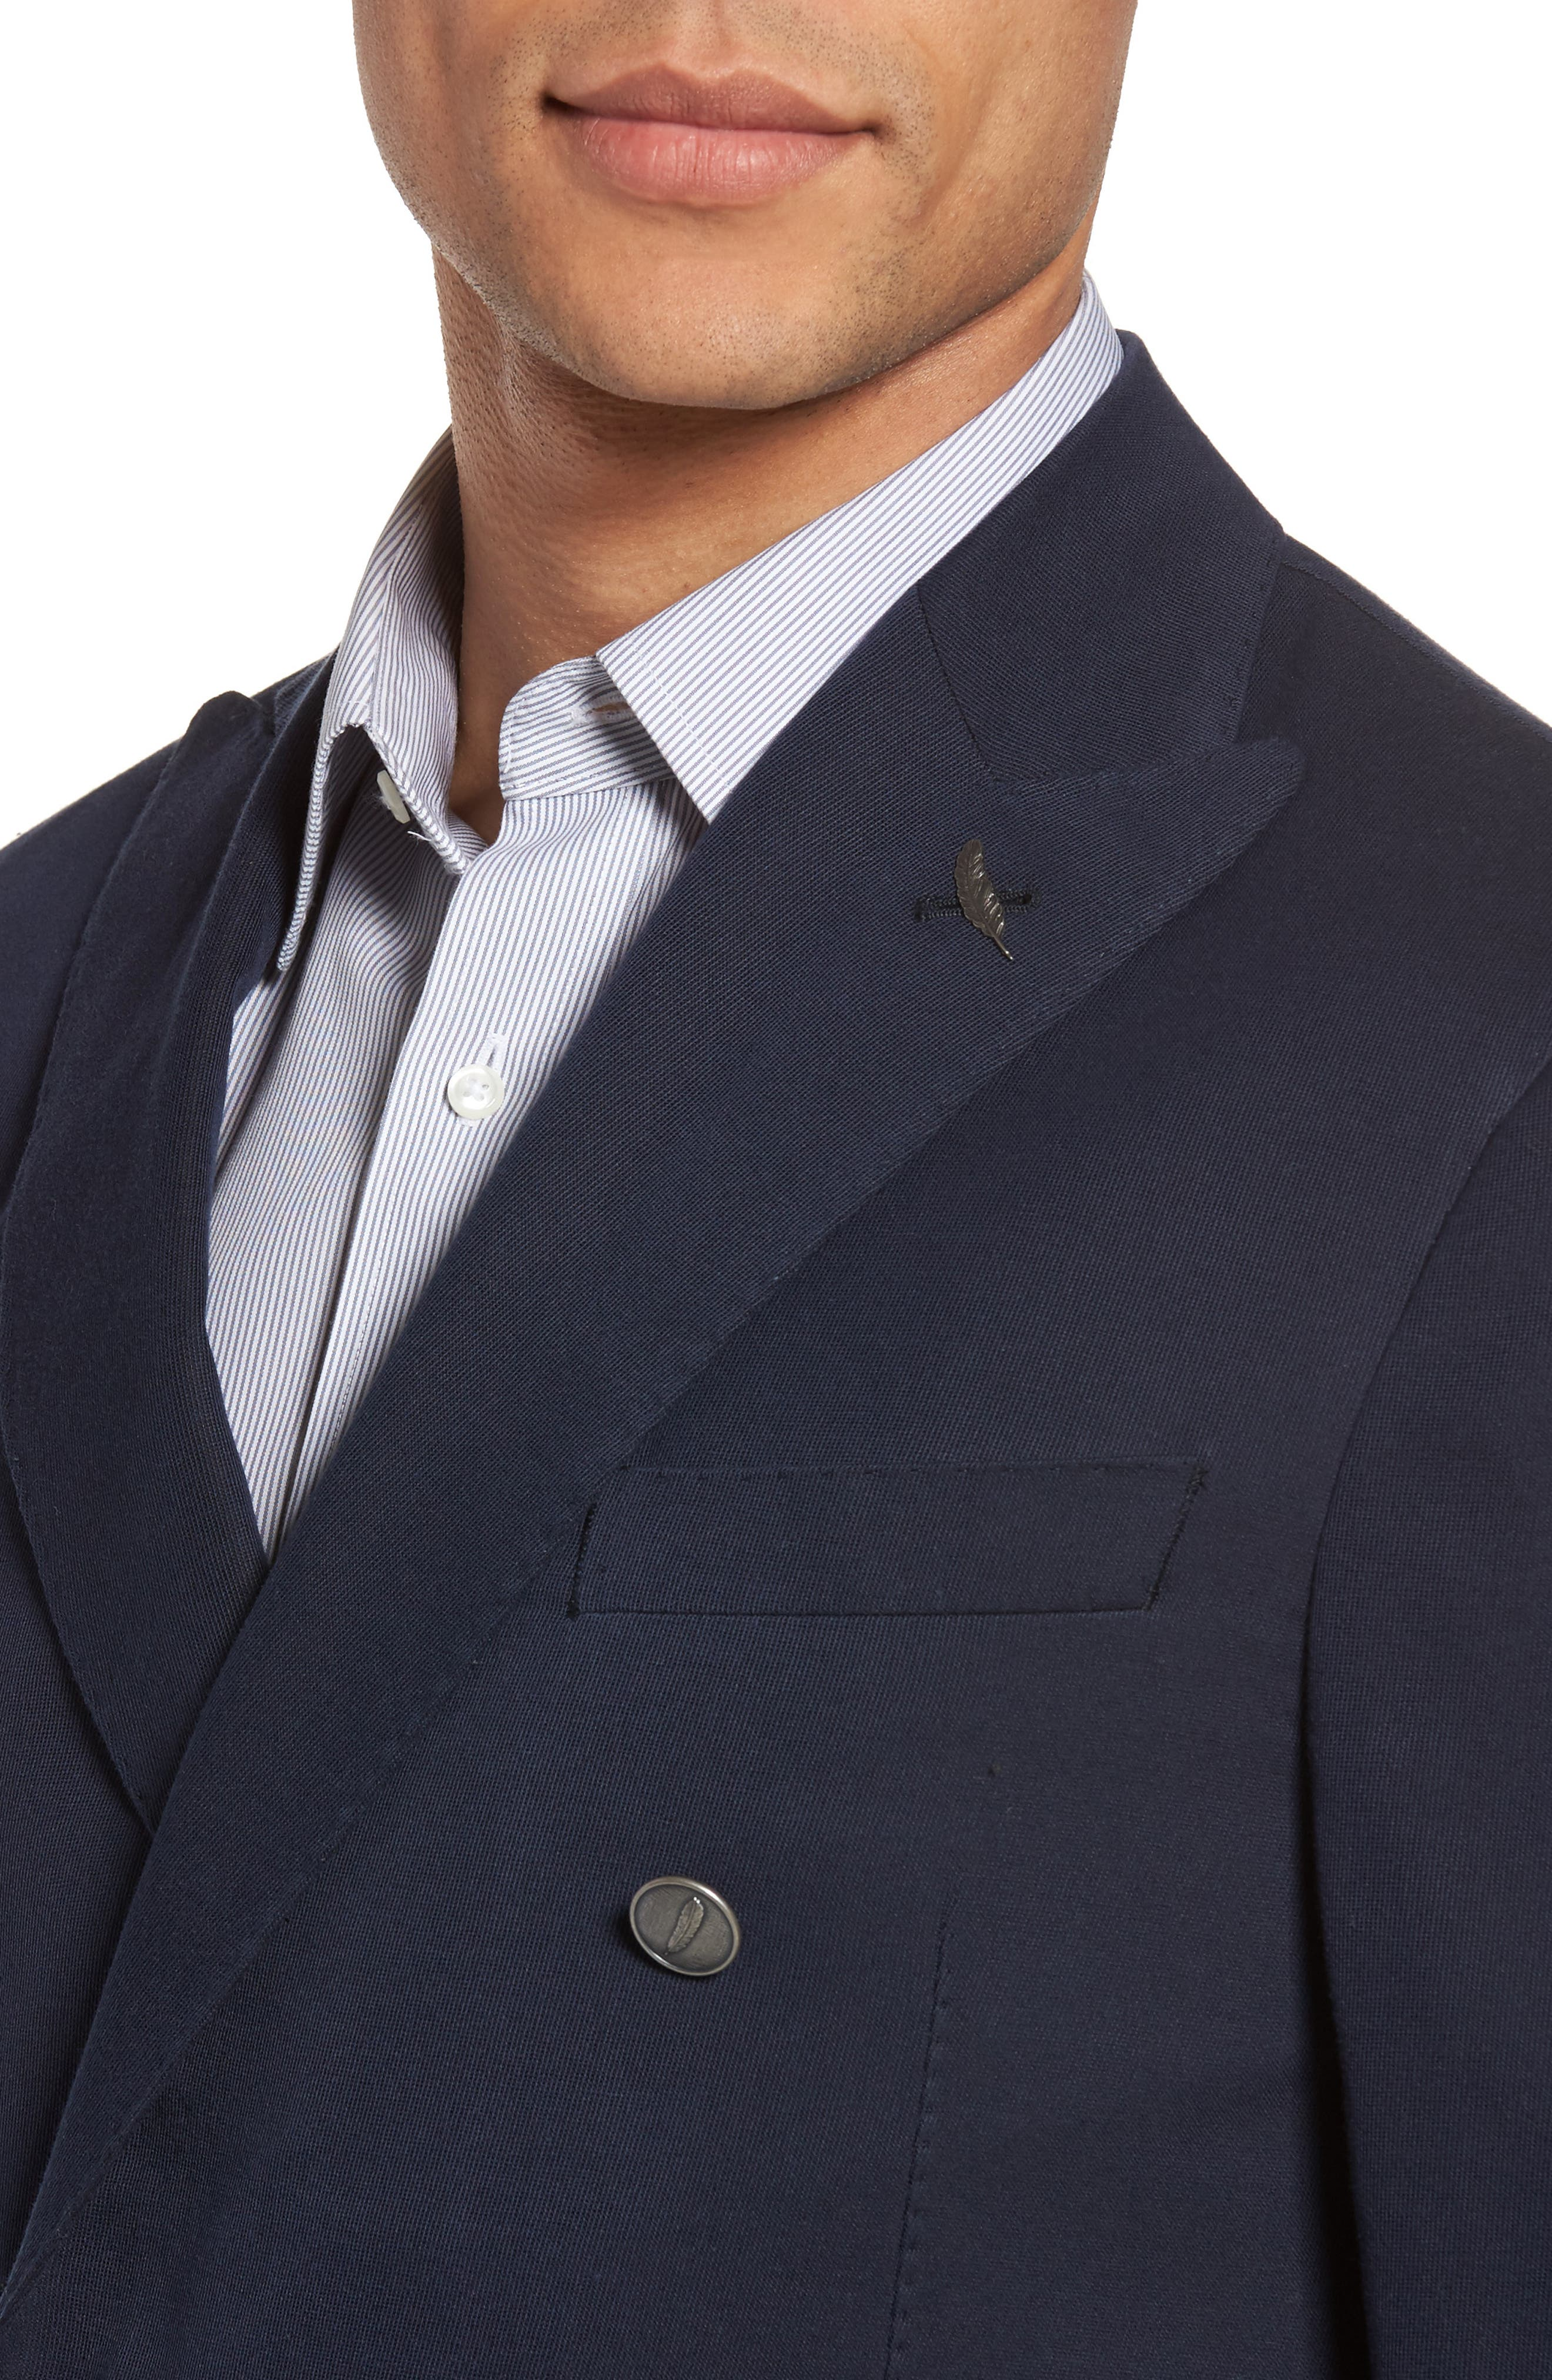 Classic Fit Double Breasted Blazer,                             Alternate thumbnail 4, color,